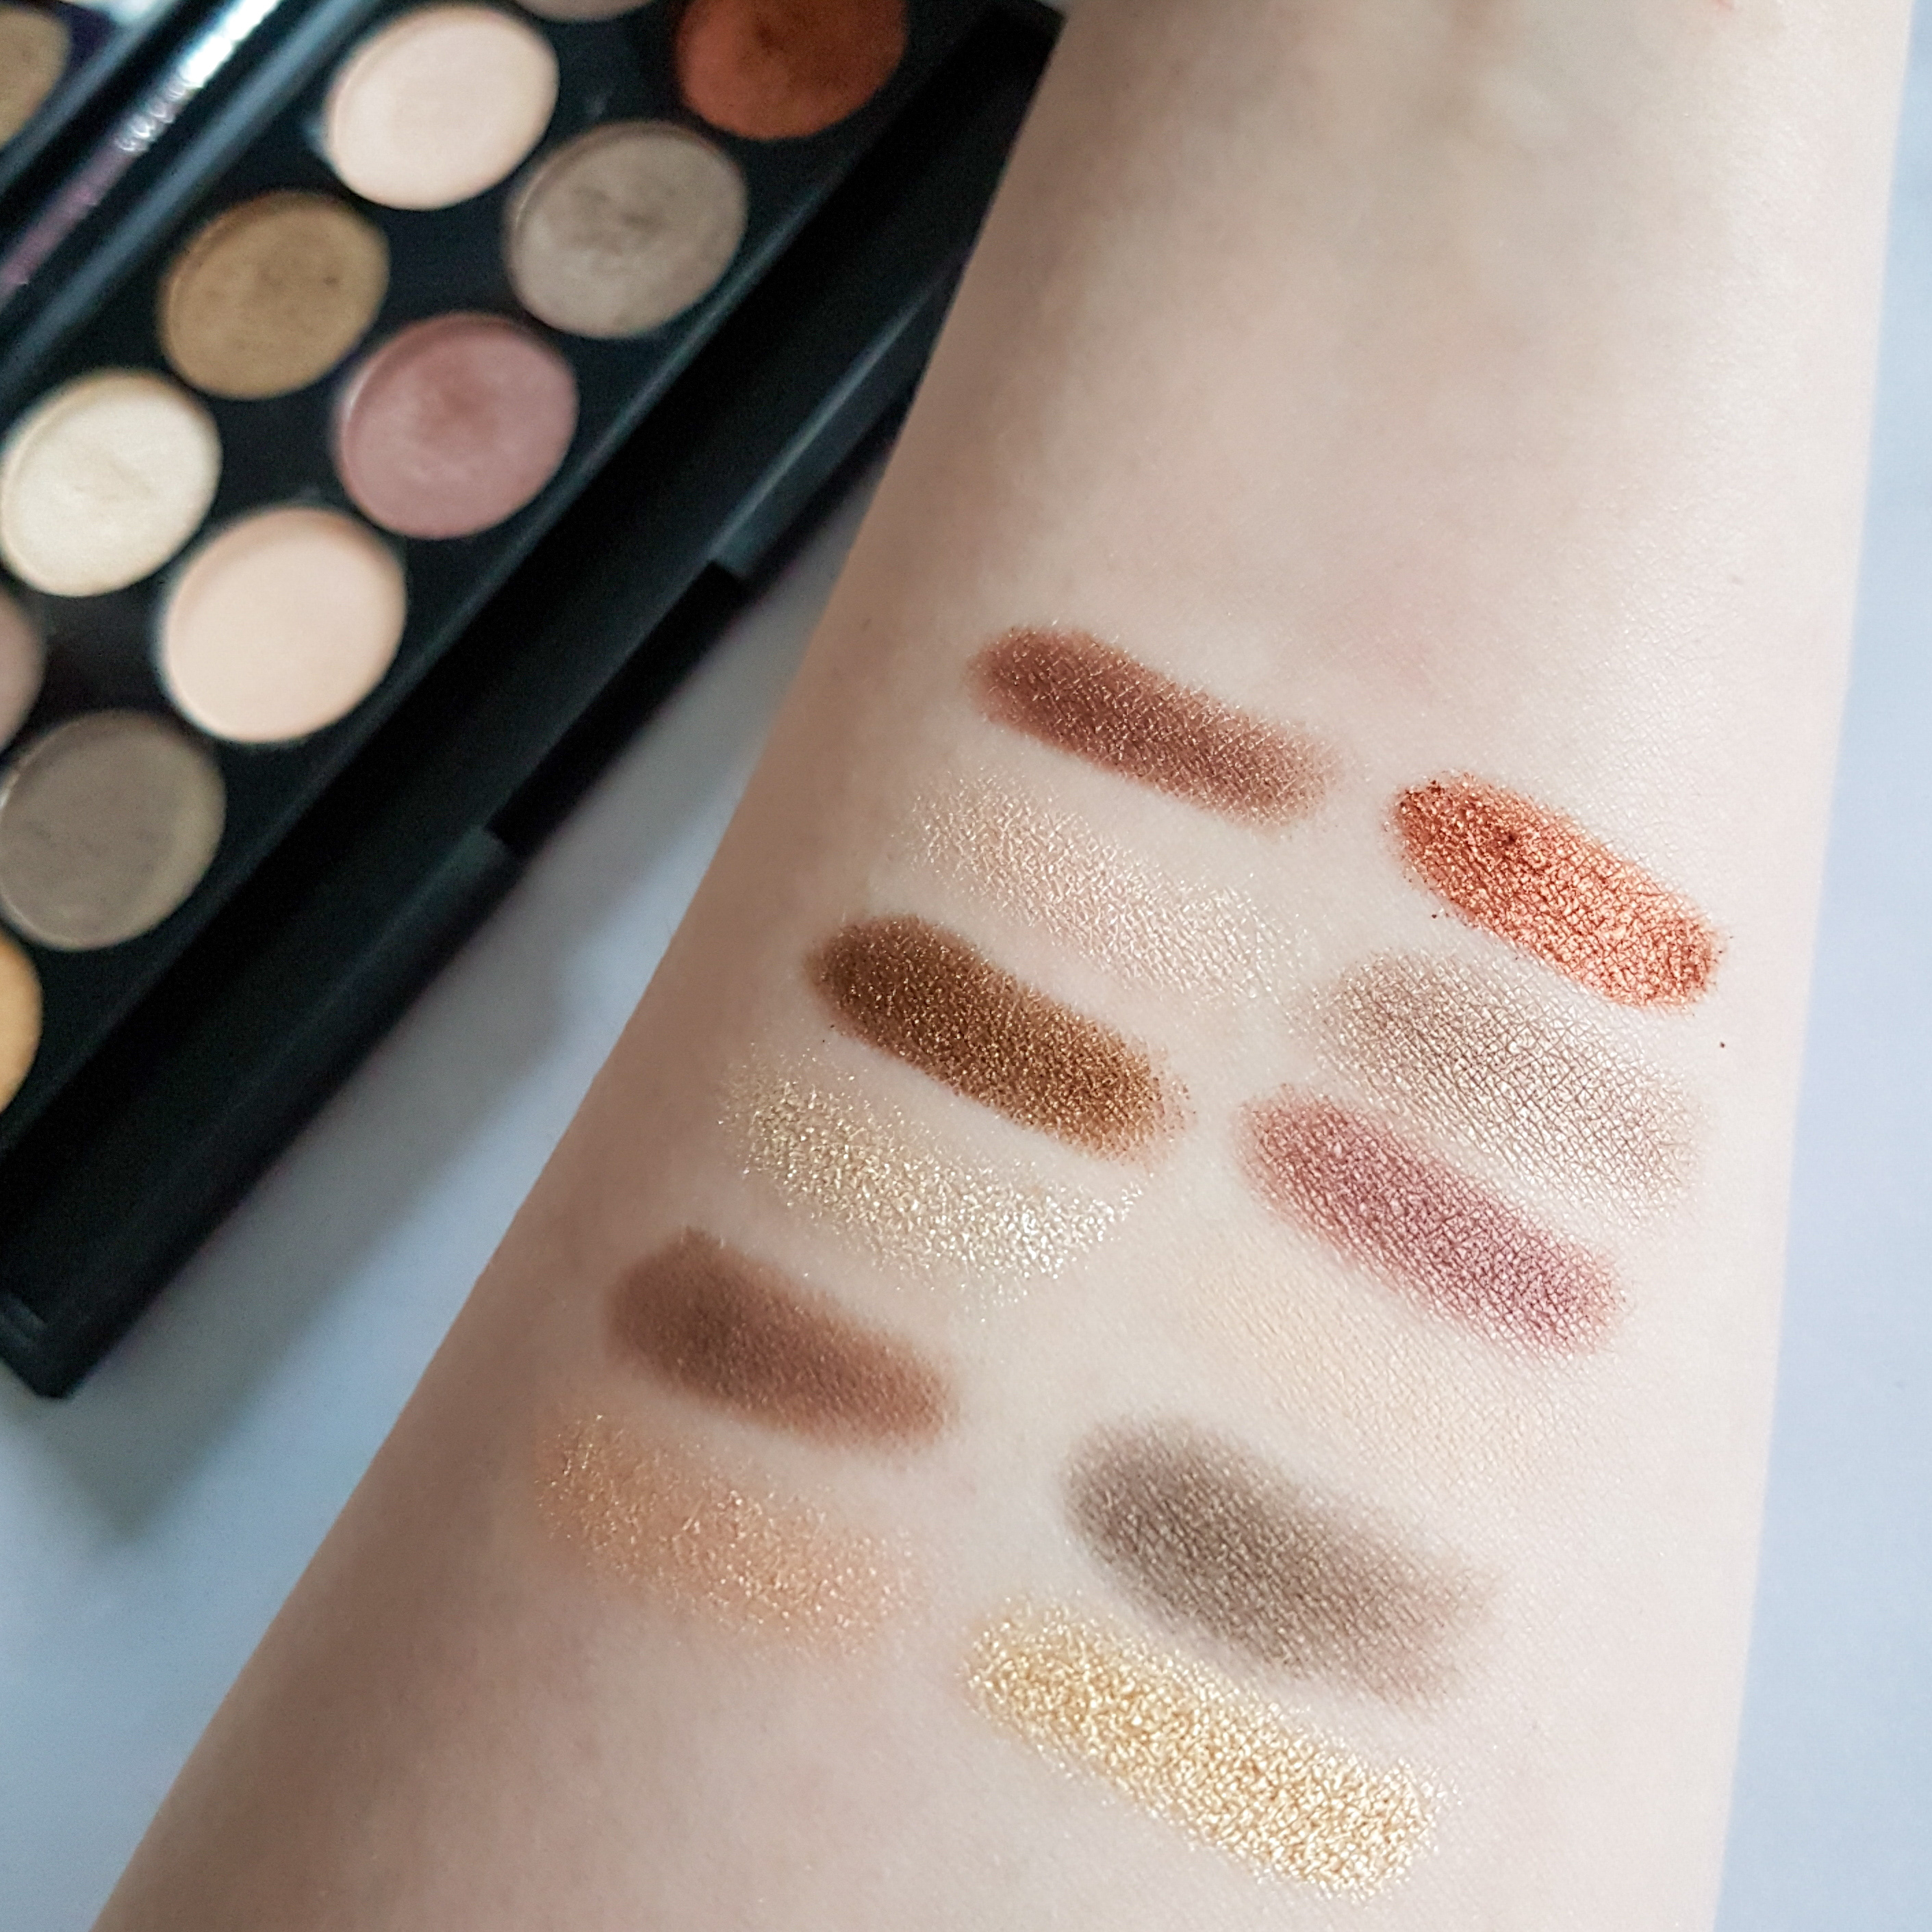 Sleek All Night Long Eyeshadow Swatches